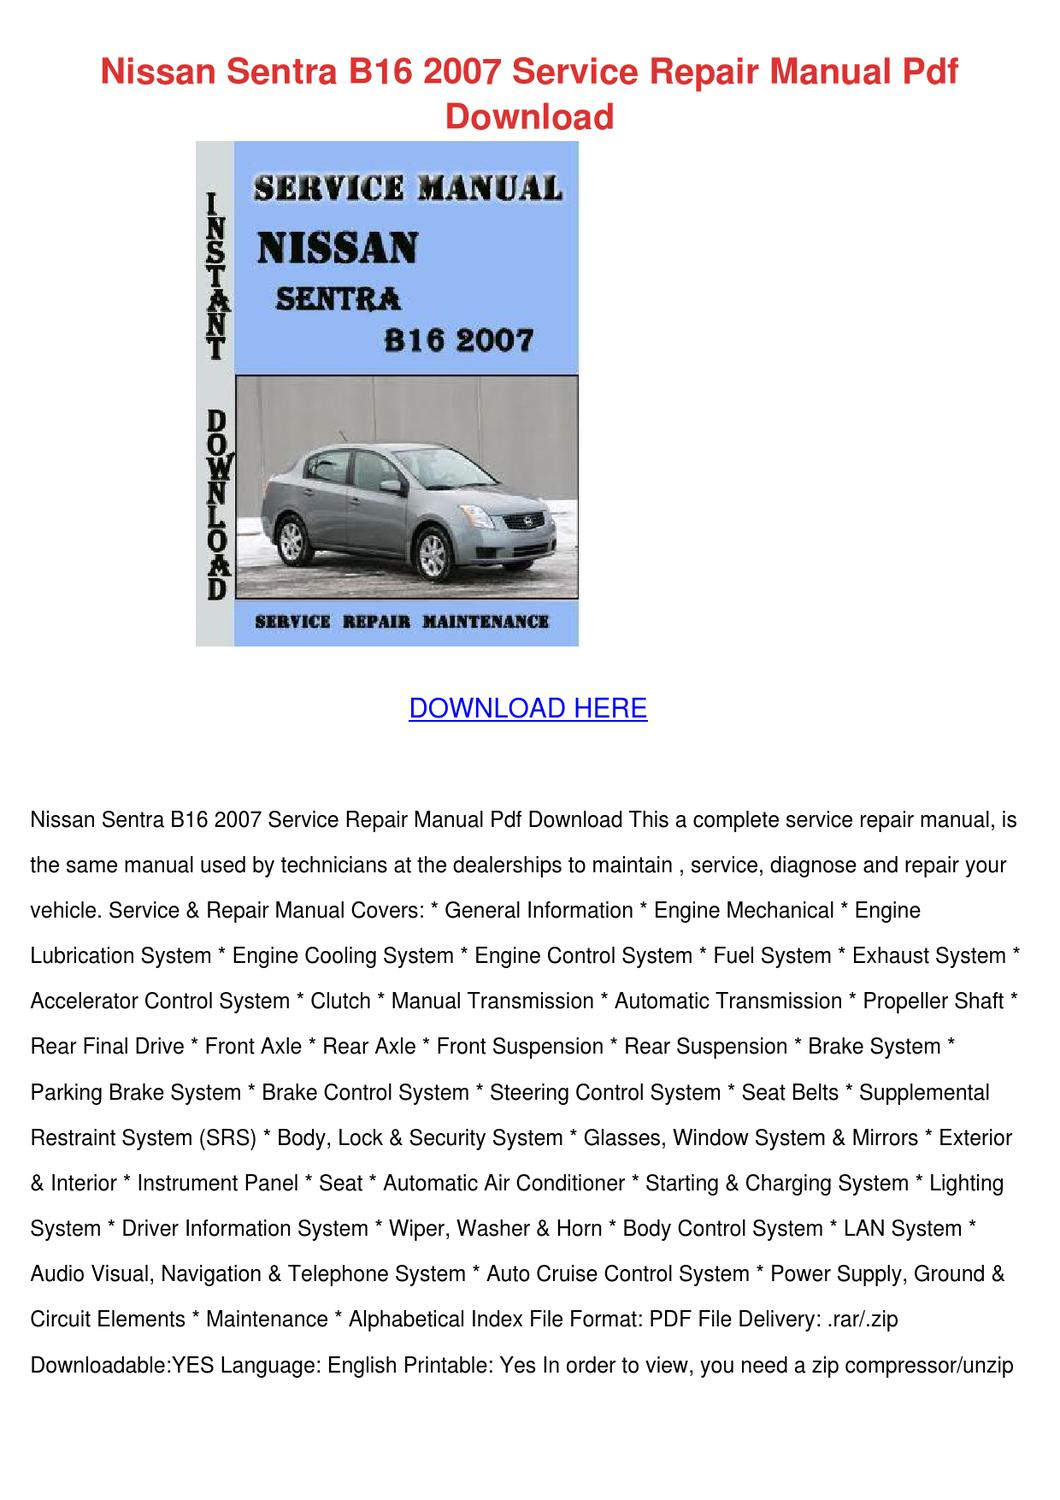 Nissan Sentra Service Manual: Power supply and ground circuit